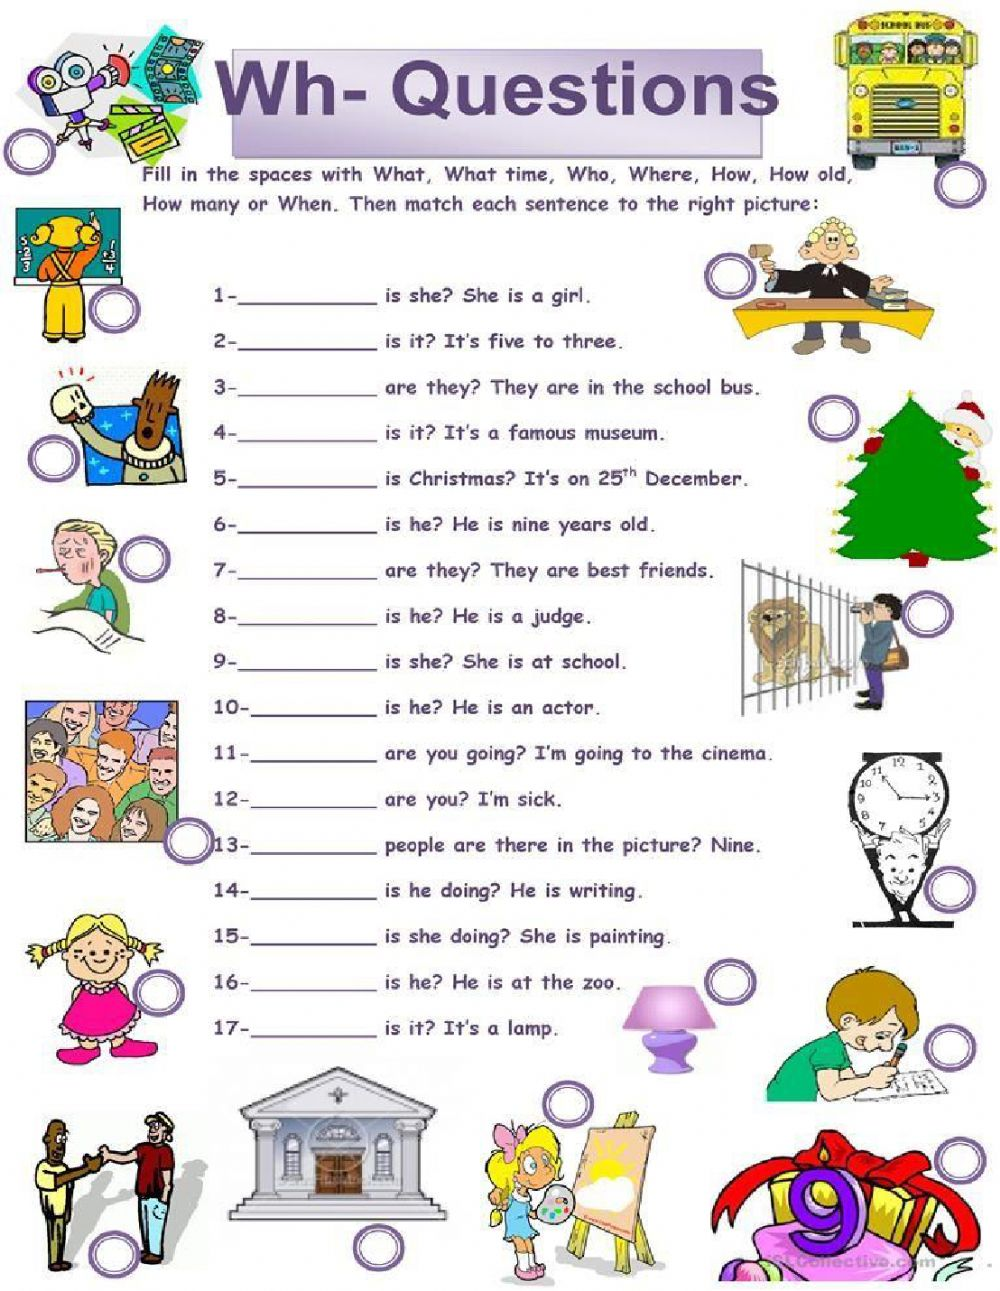 Wh Questions Worksheet - Interactive worksheet